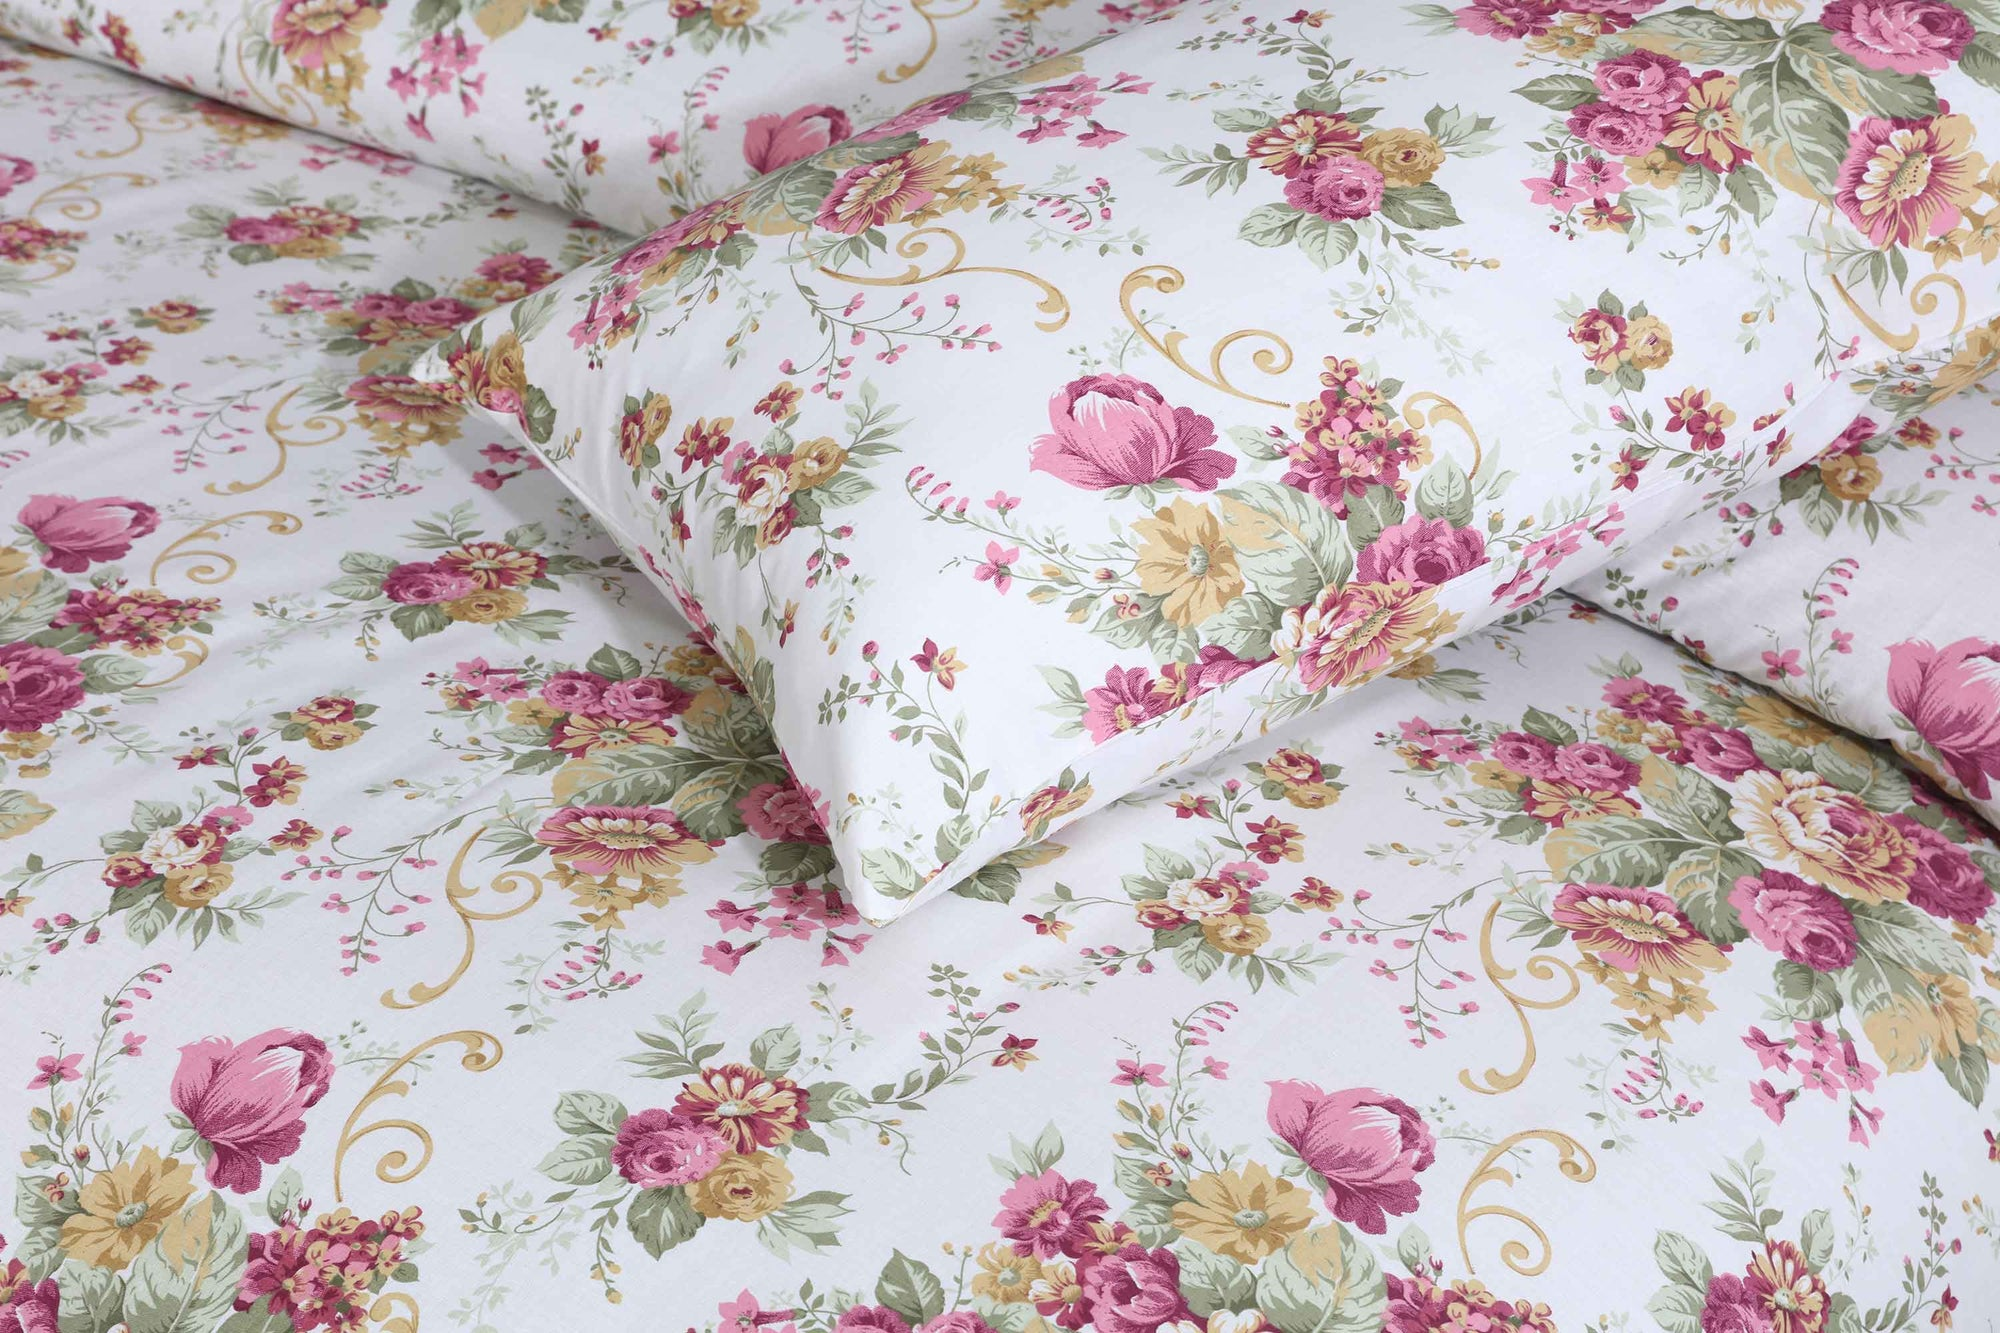 Grace Pink Bliss D105 - Cotton pc king size Bedsheet with 2 pillow covers.